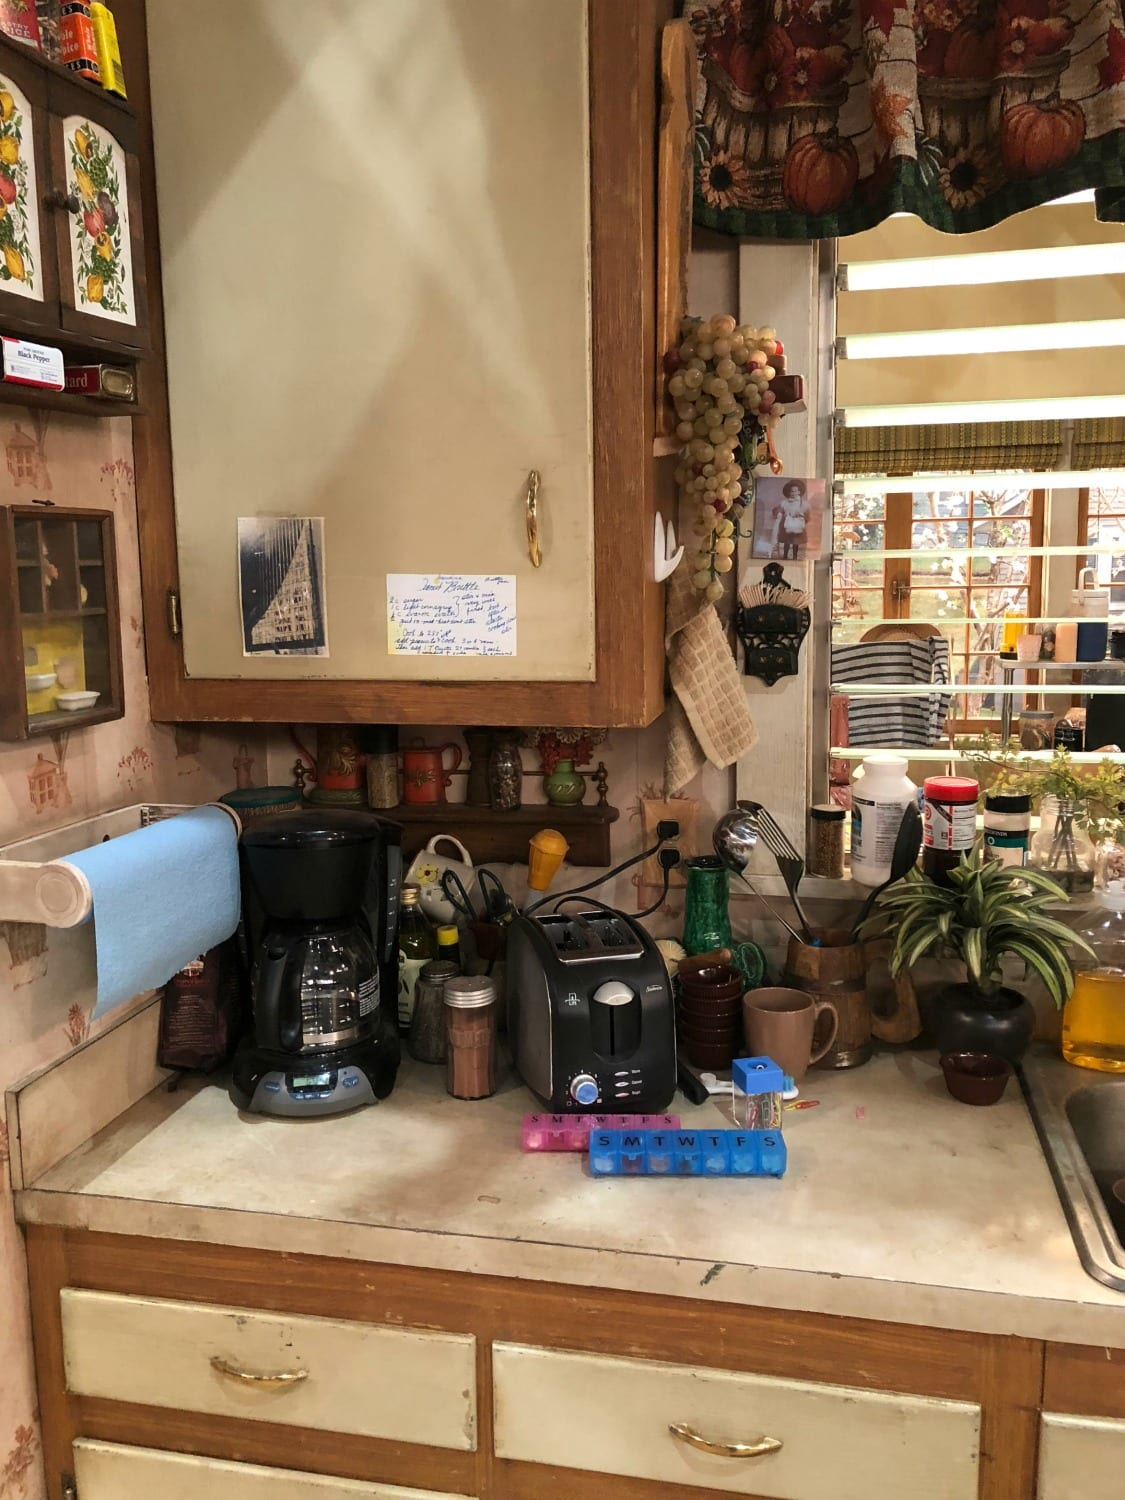 Roseanne Set 2018 Kitchen Counter